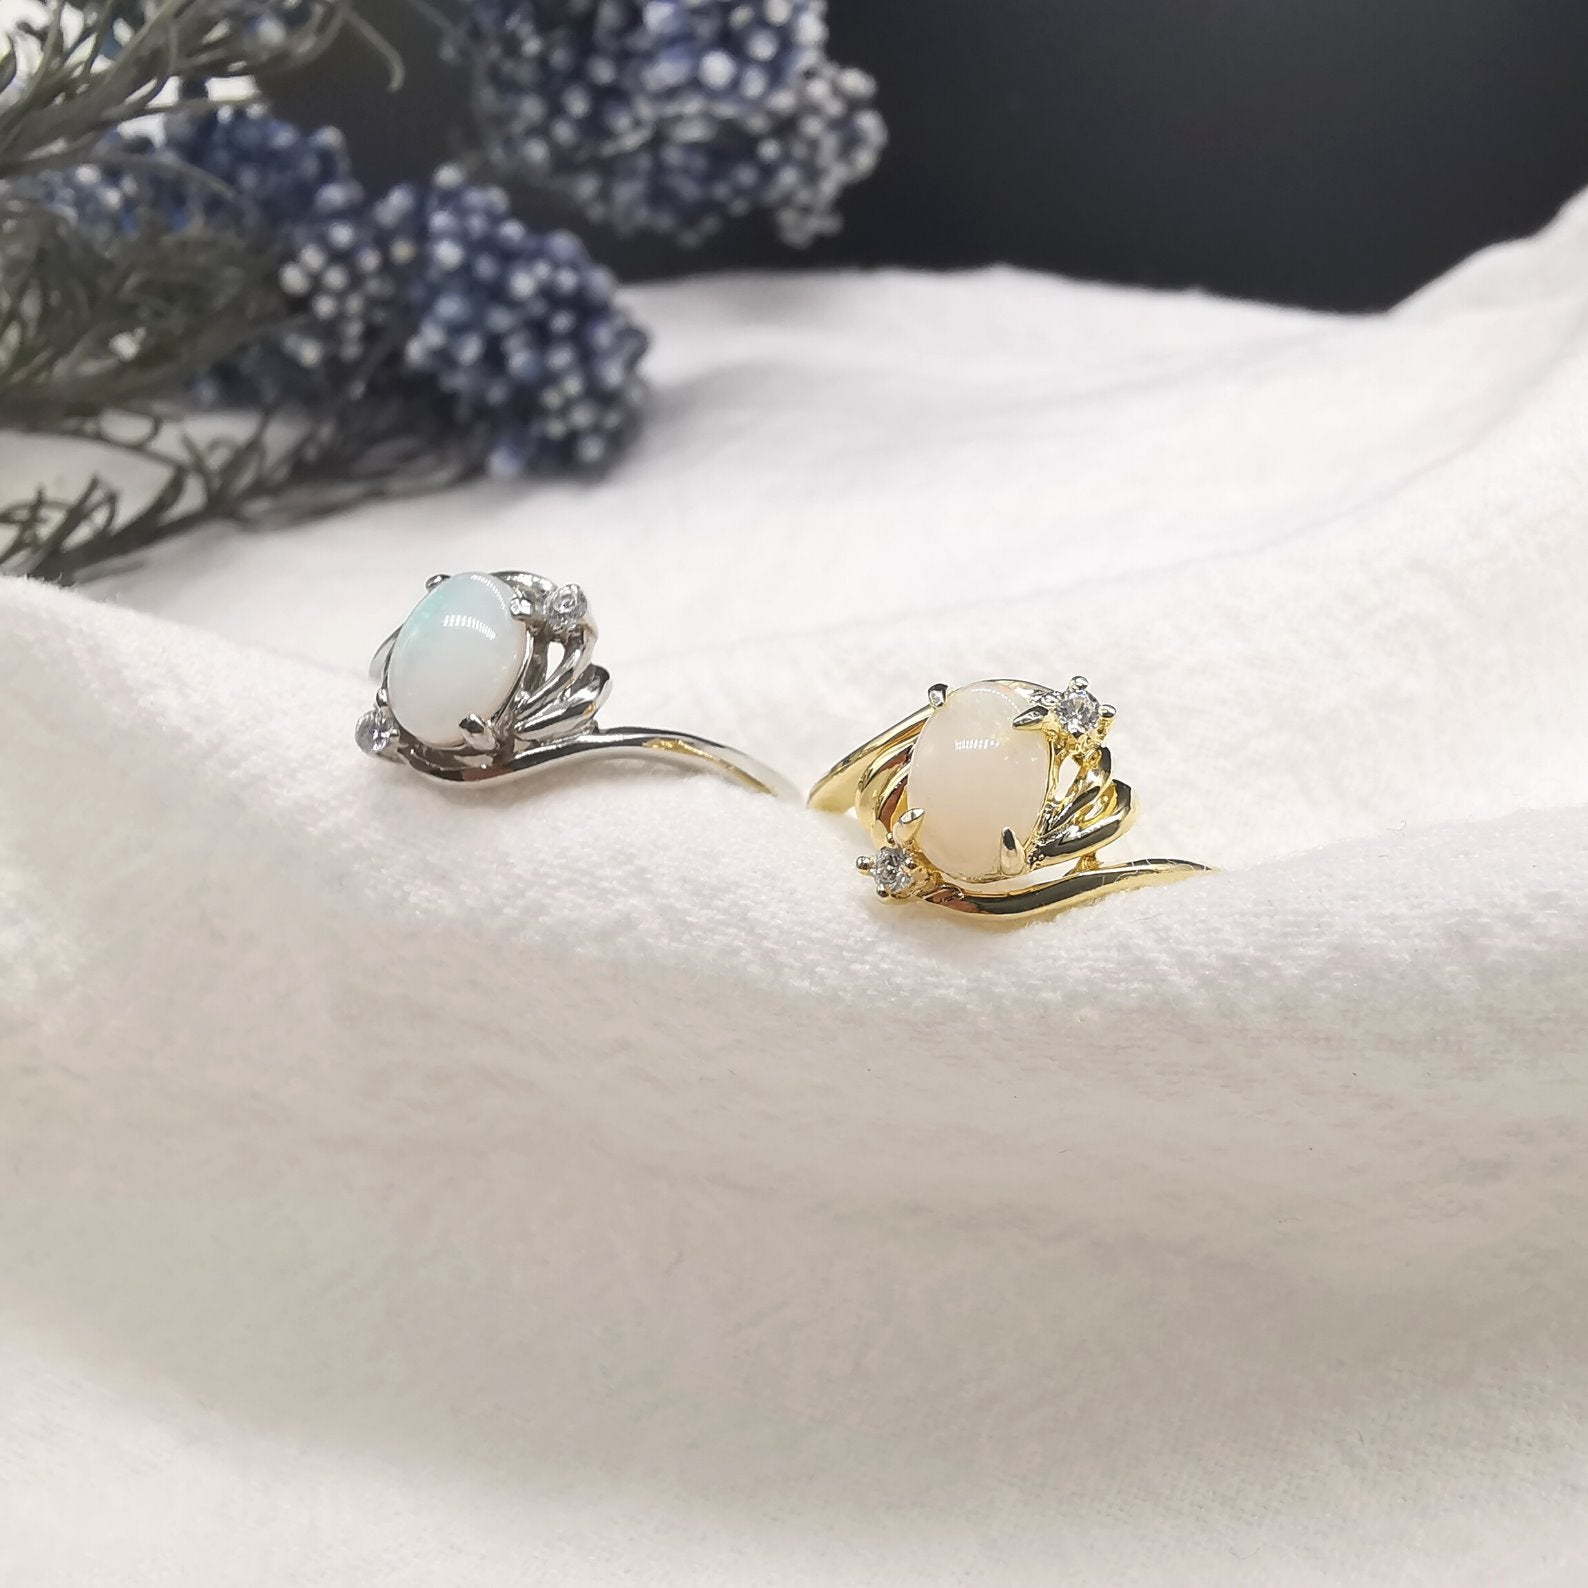 Solid Natural Opal Rings With Cubic Zirconia - Bolino Studio - Minimalist Jewellery